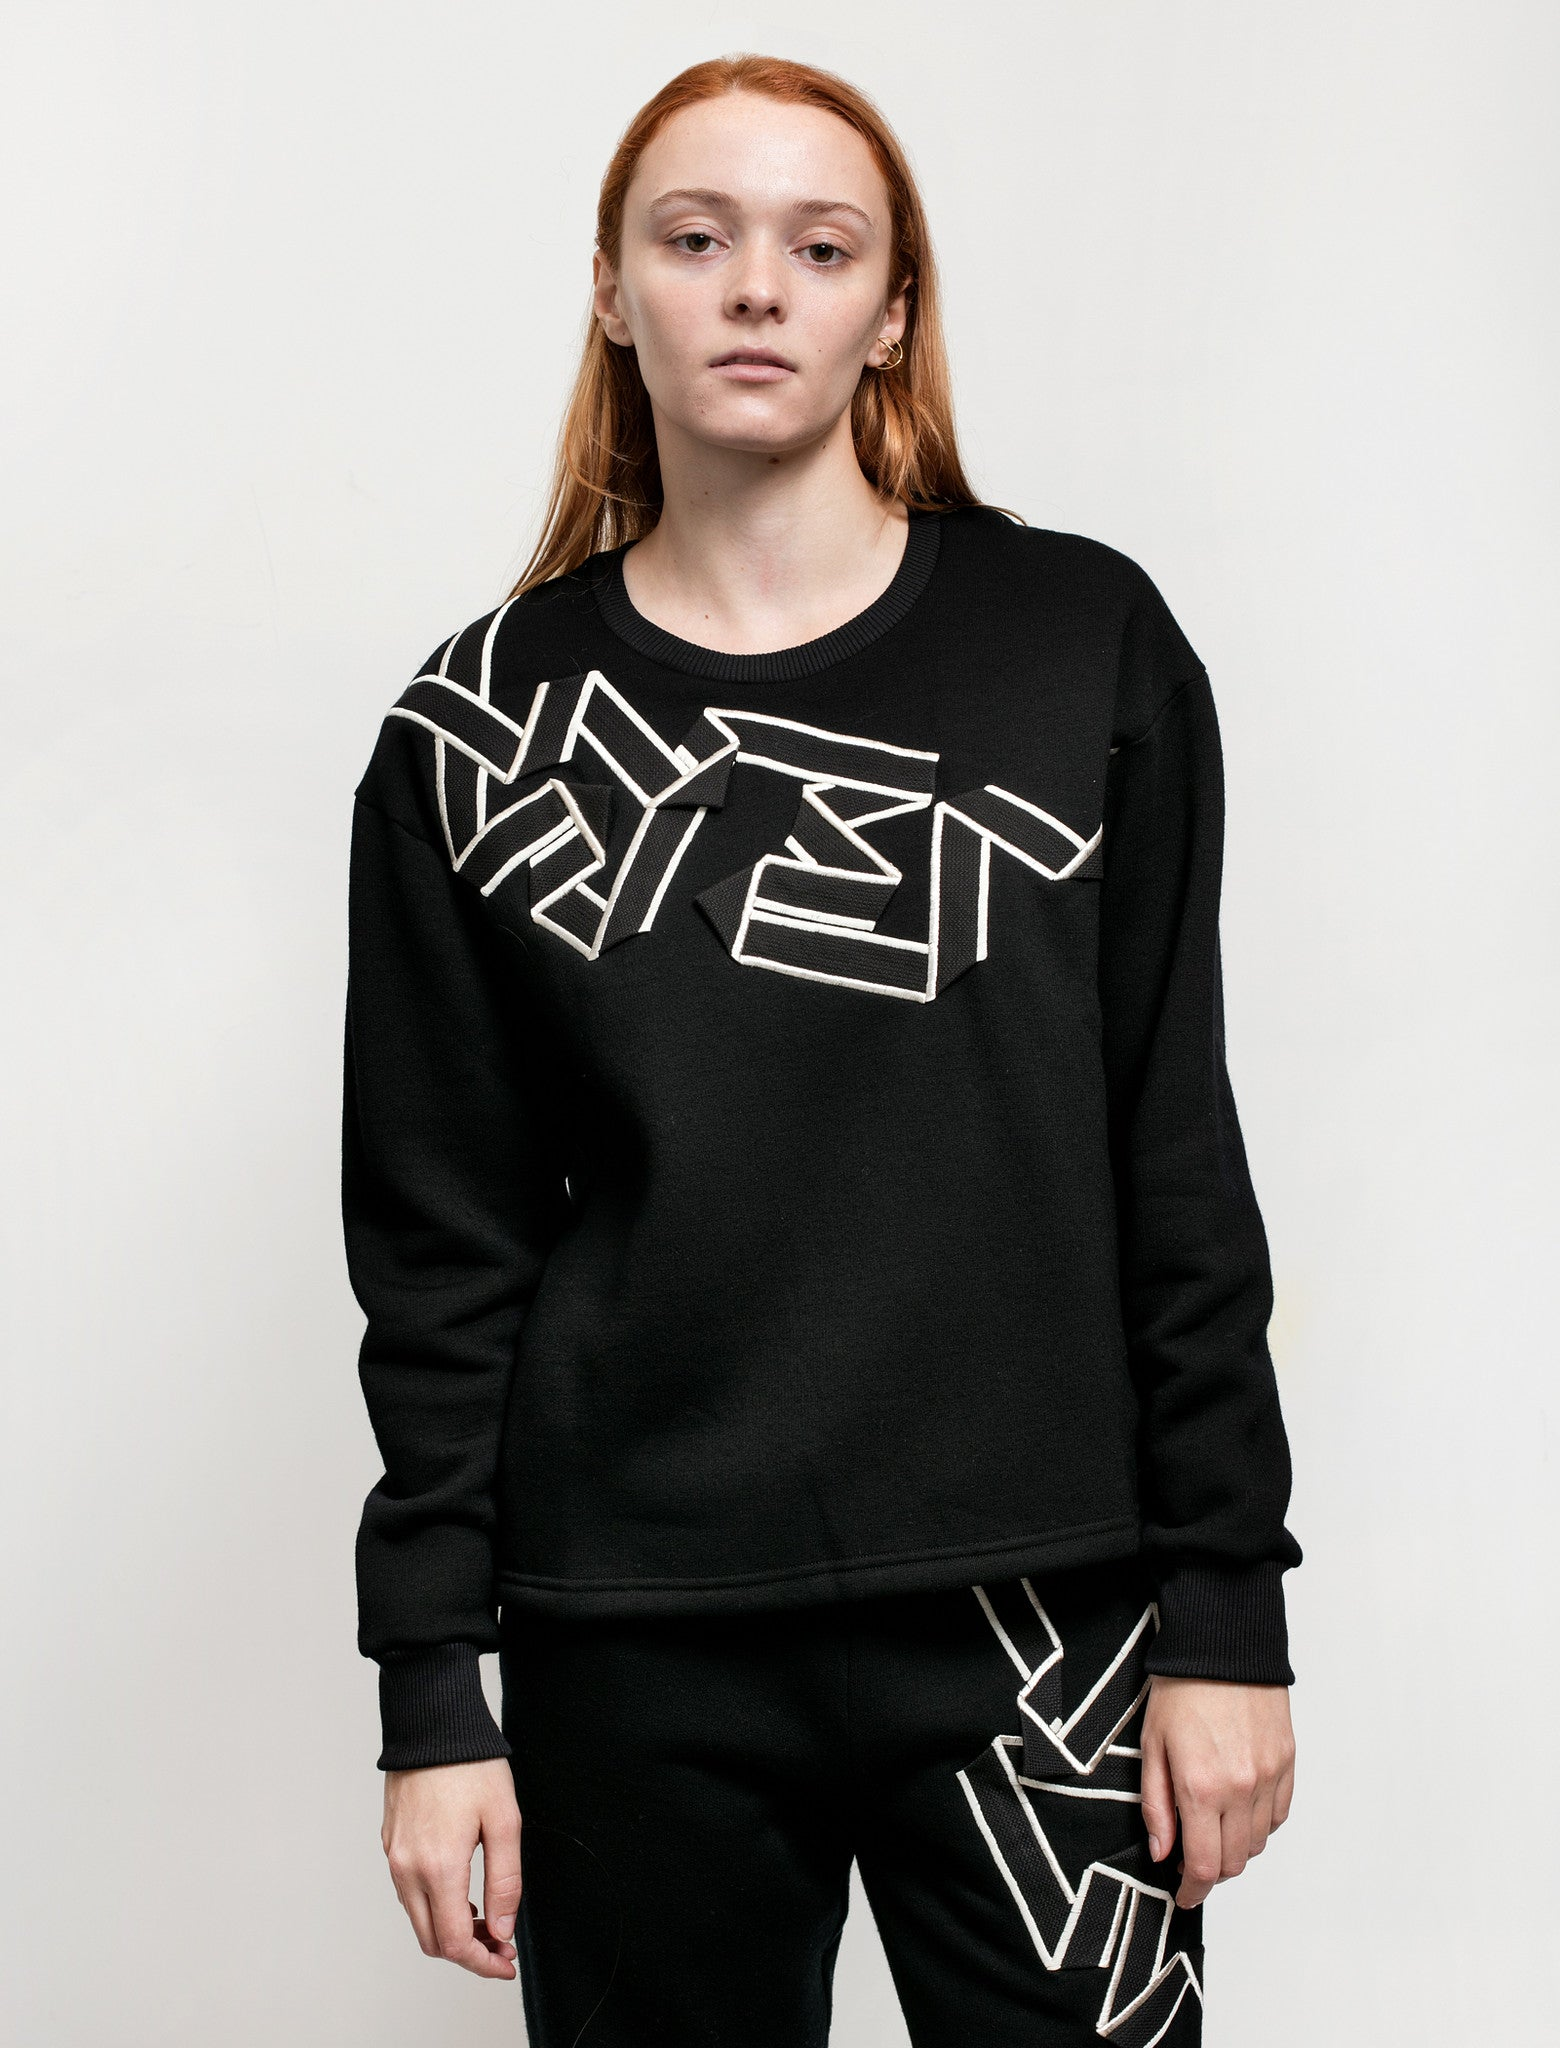 Christopher Raeburn Embroidered Tape Crewneck Sweatshirt